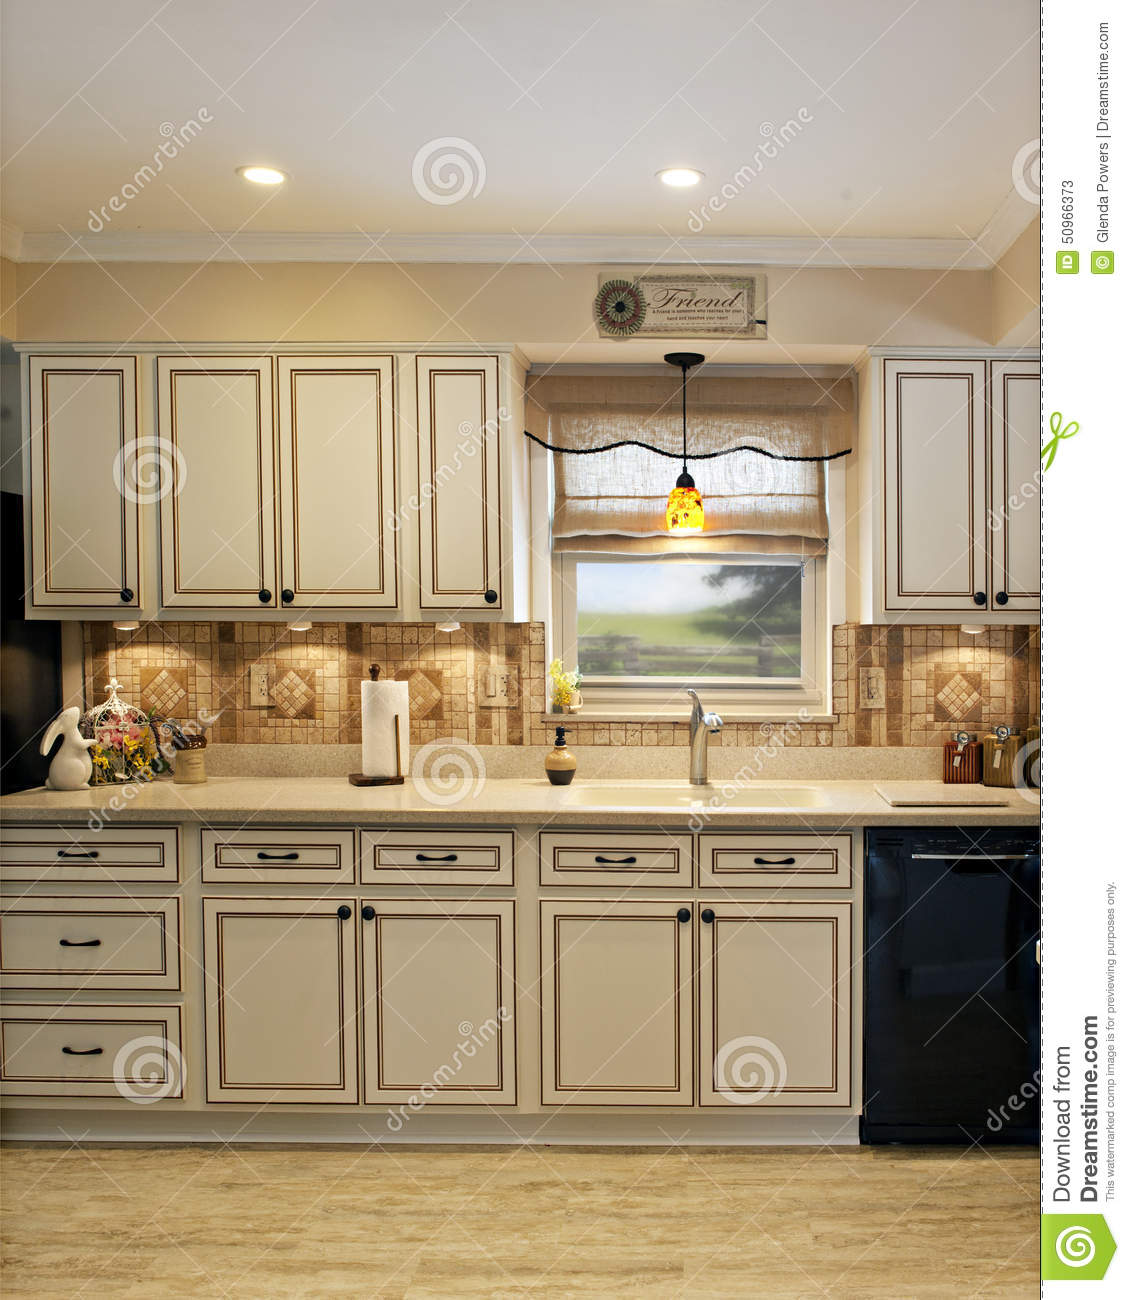 Kitchen Home Improvement Project Stock Image